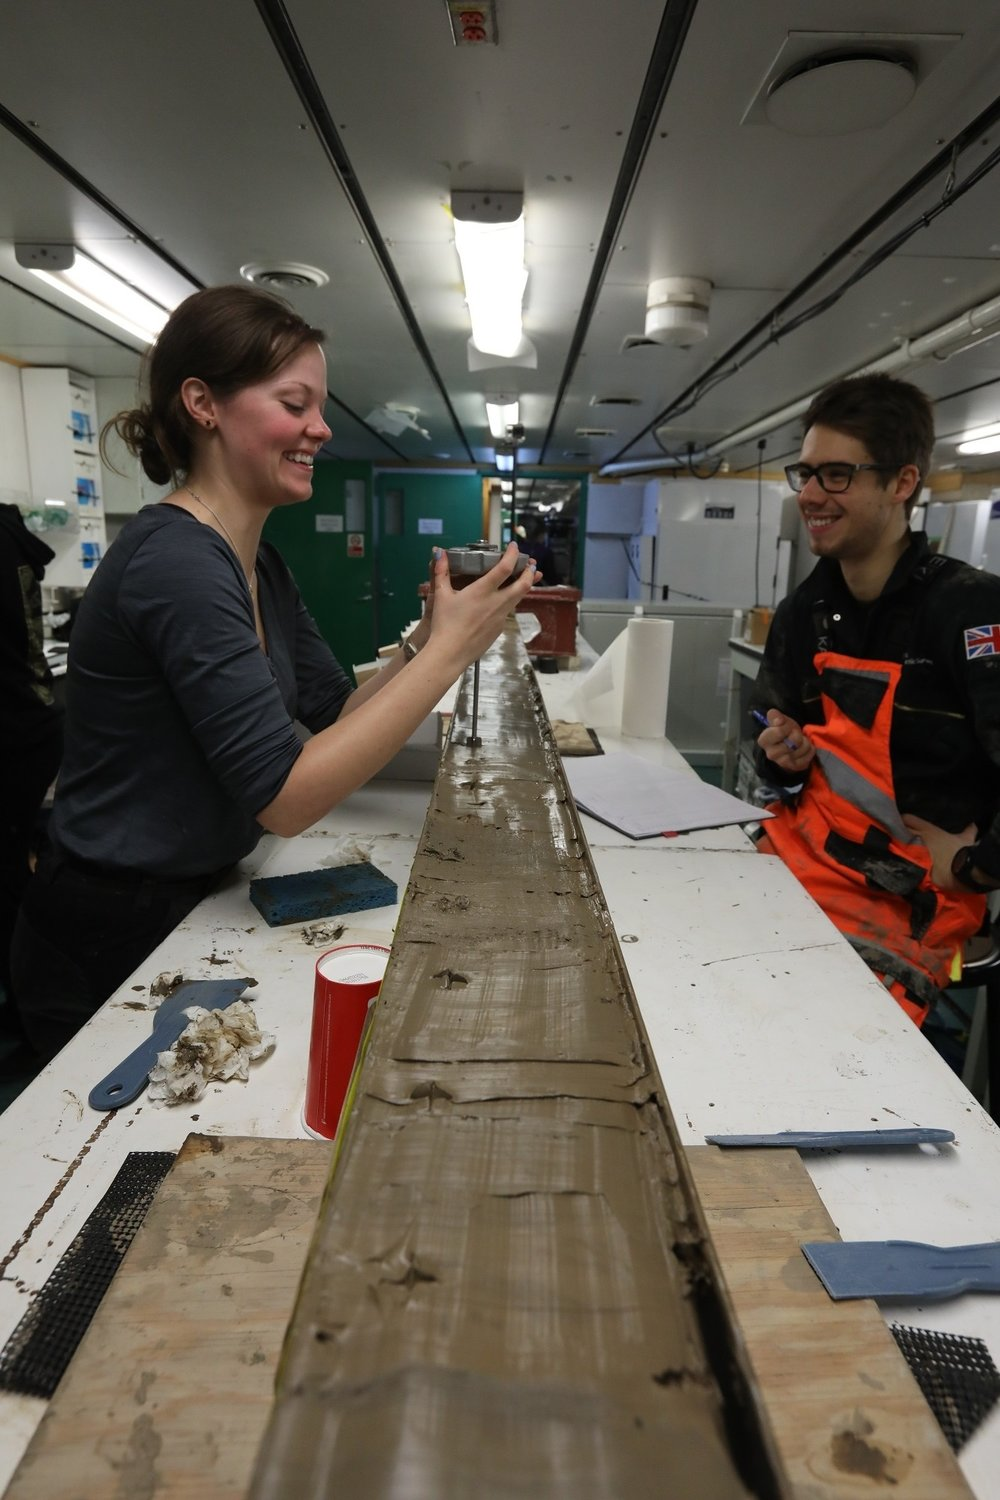 Ph.D. students Rachel Clark and James Kirkham using the Torvane on the top surface surface every 10 centimeters.